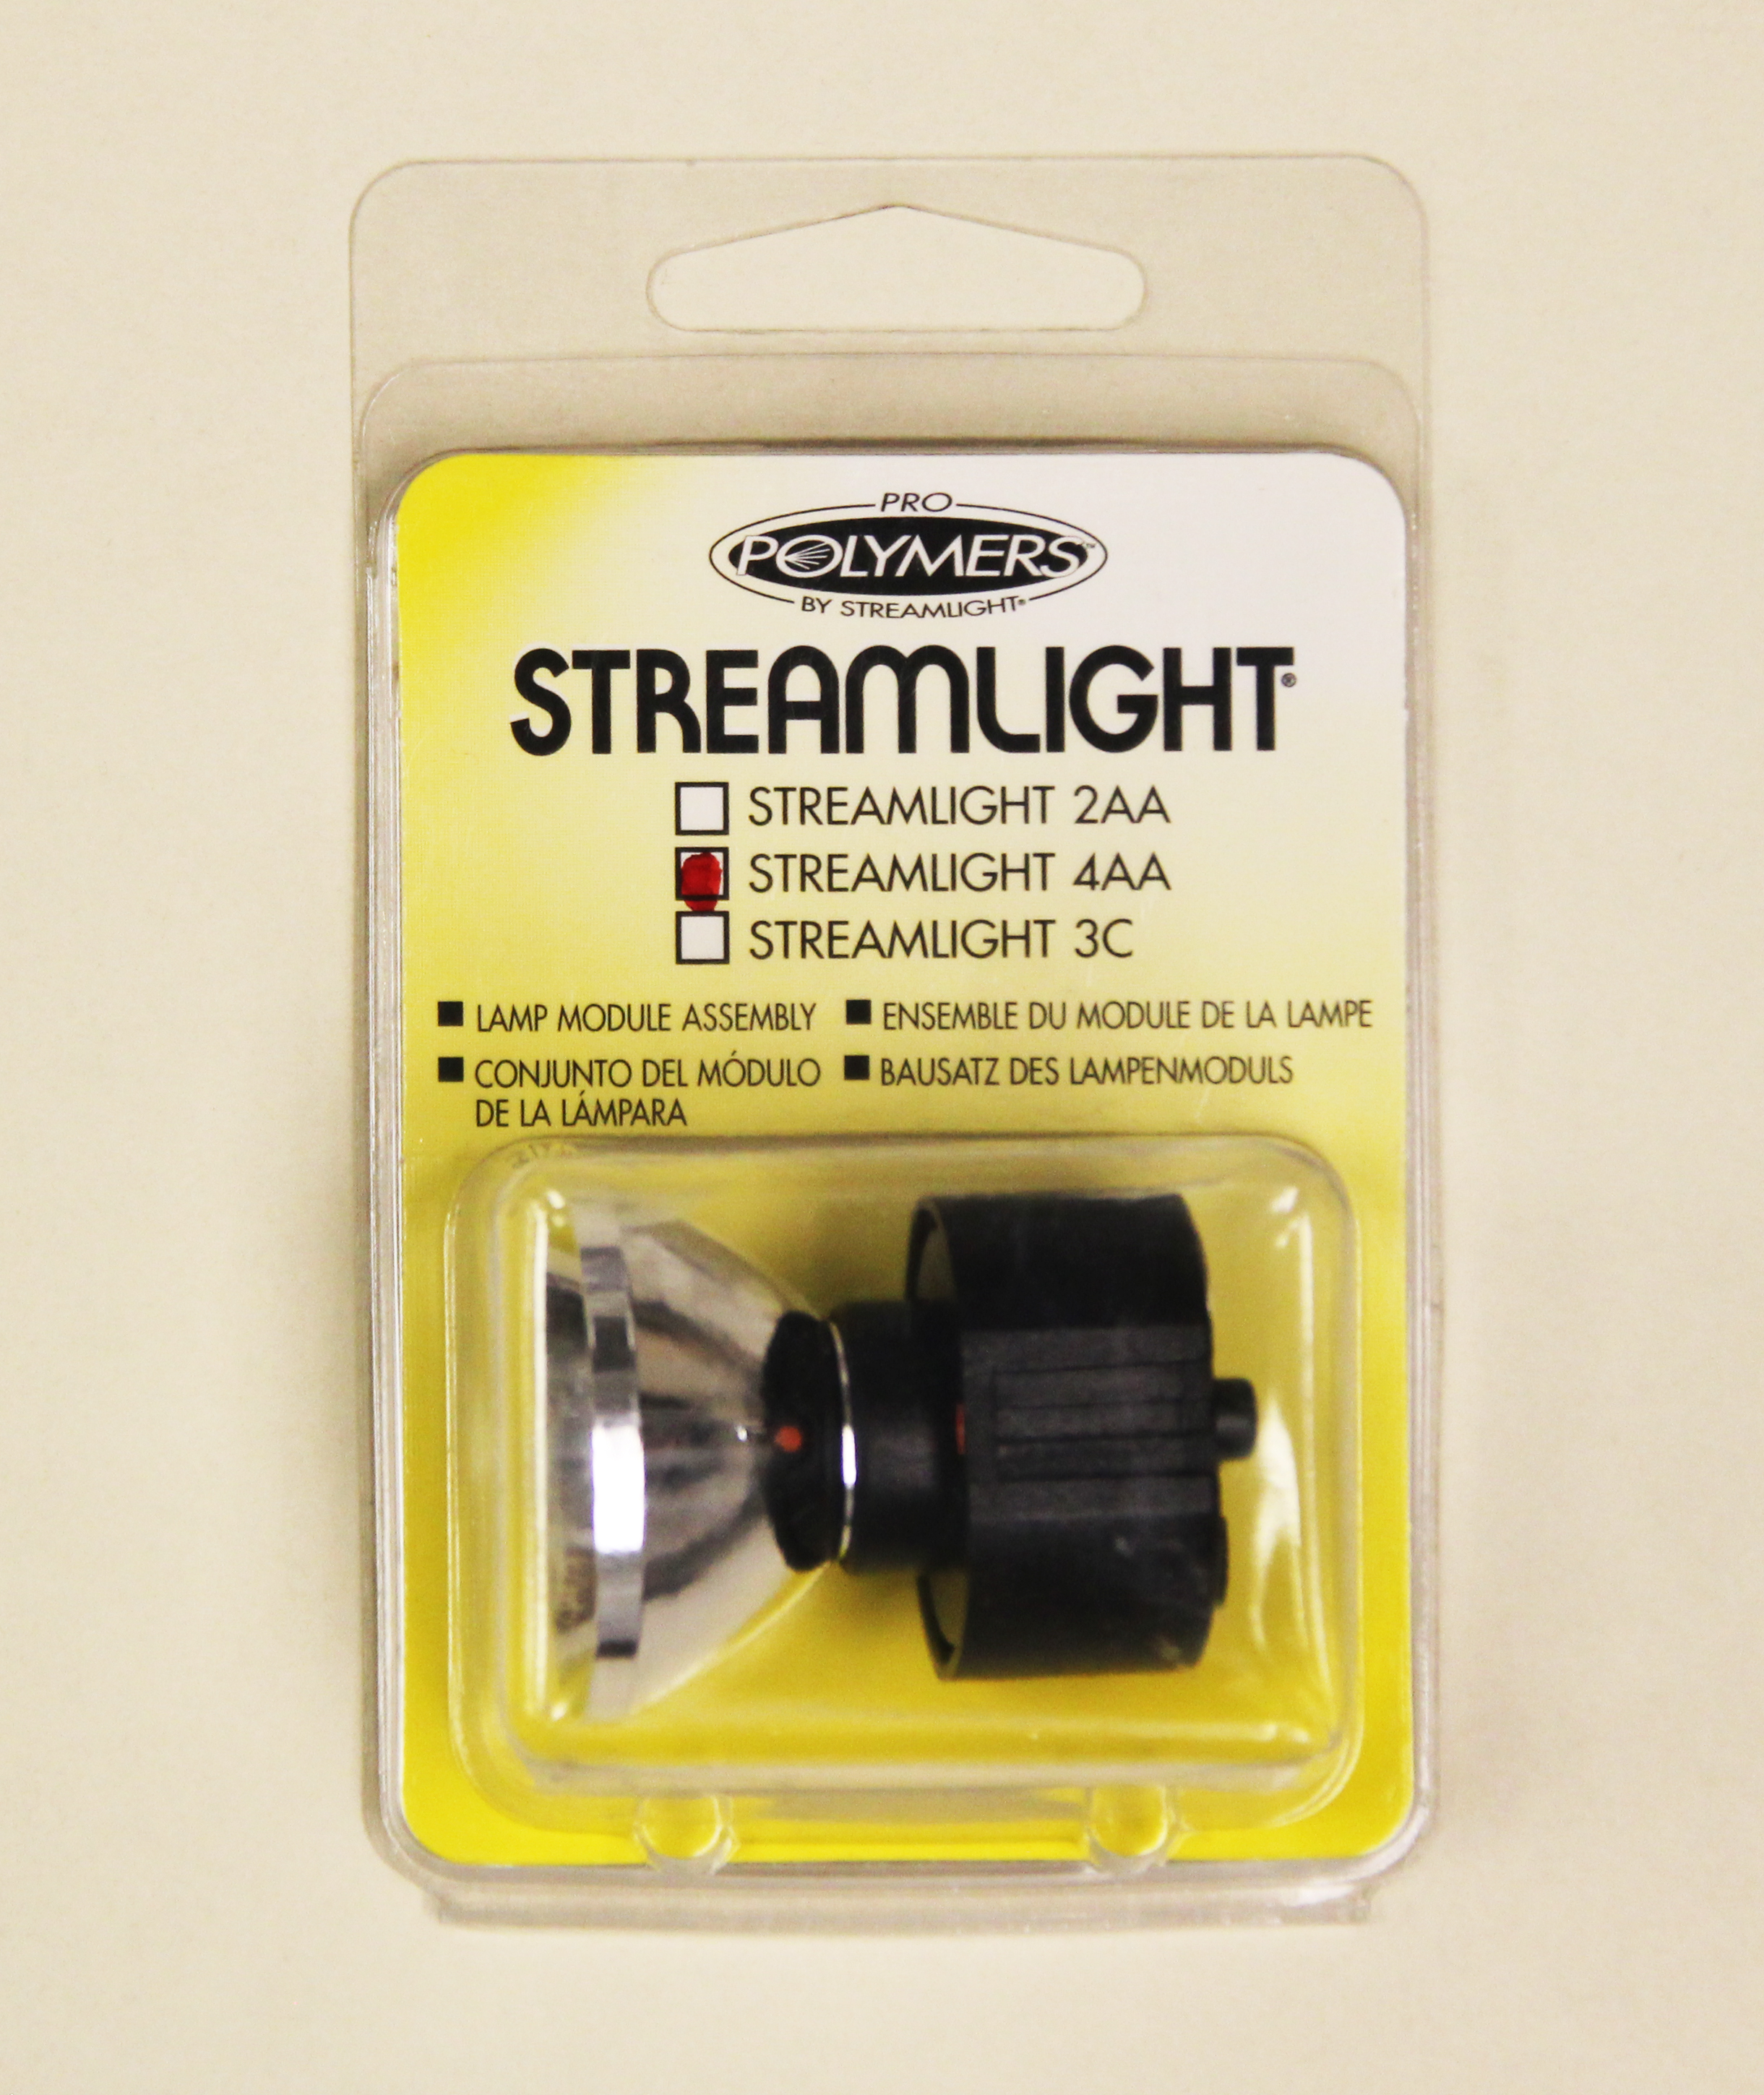 Streamlight Lamp Module Assembly (4AA)-Streamlight